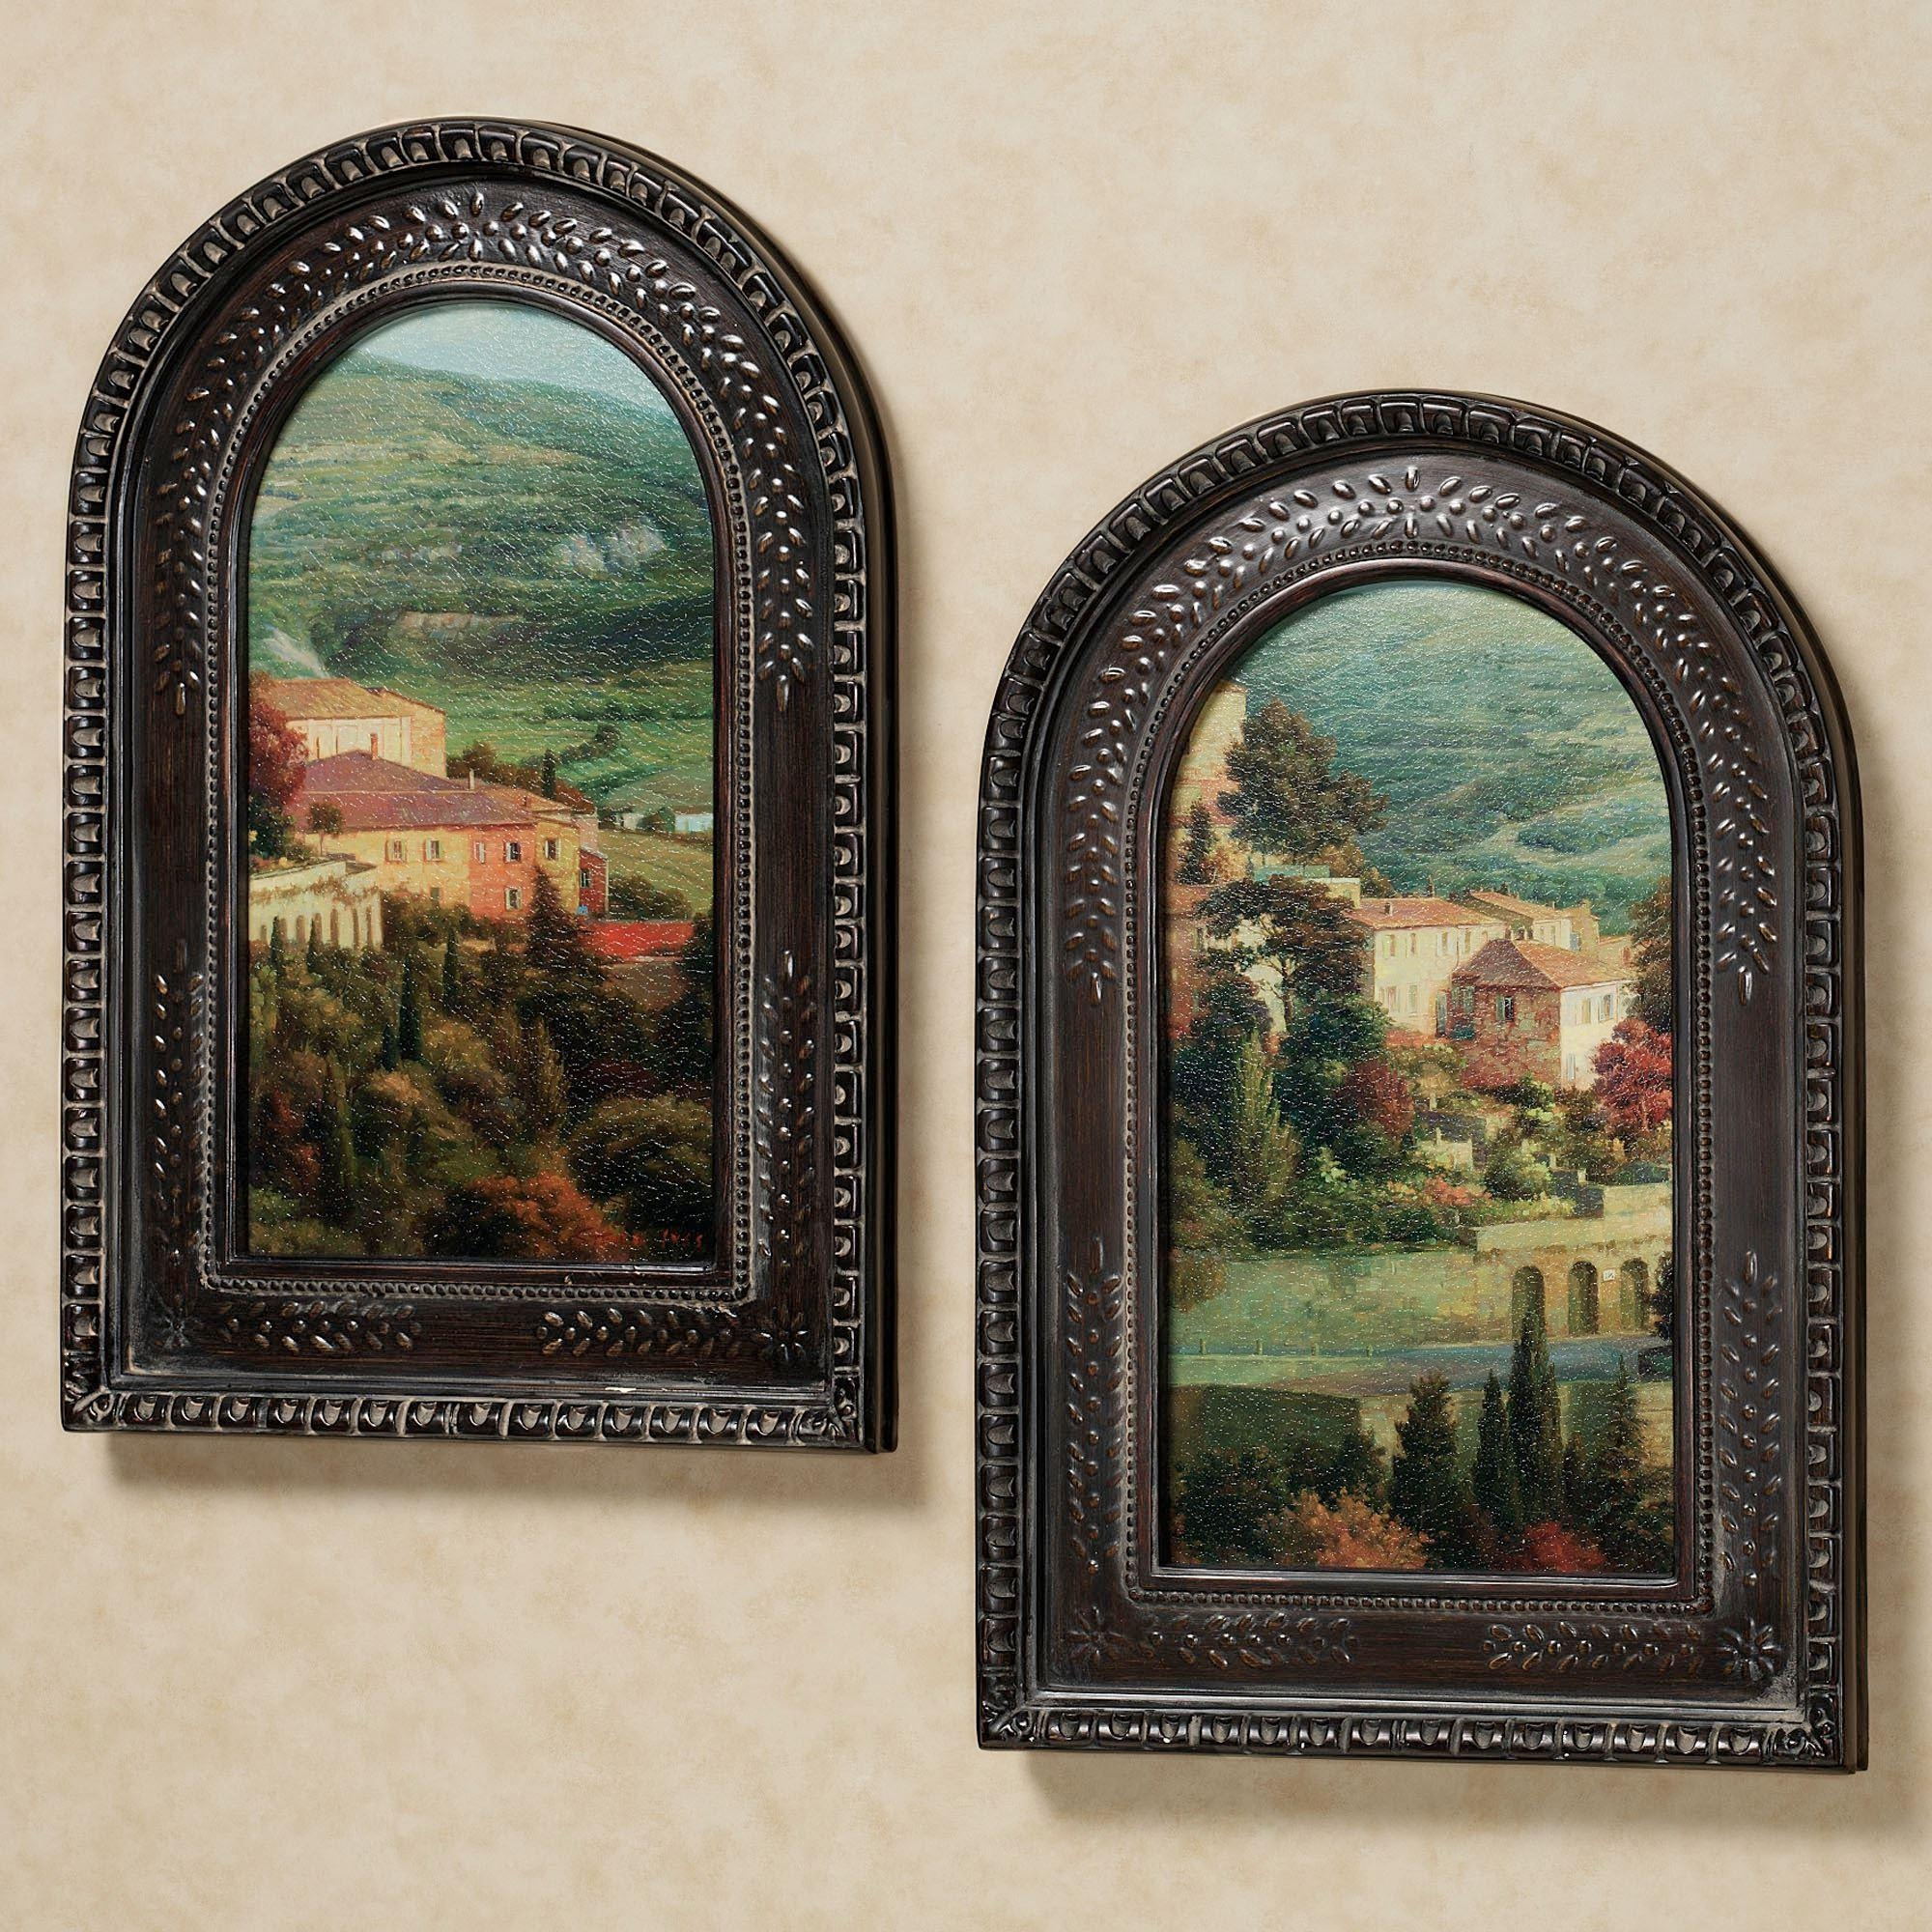 Tuscan And Italian Home Decor   Touch Of Class Within Italian Wall Art For Bedroom (Image 12 of 20)